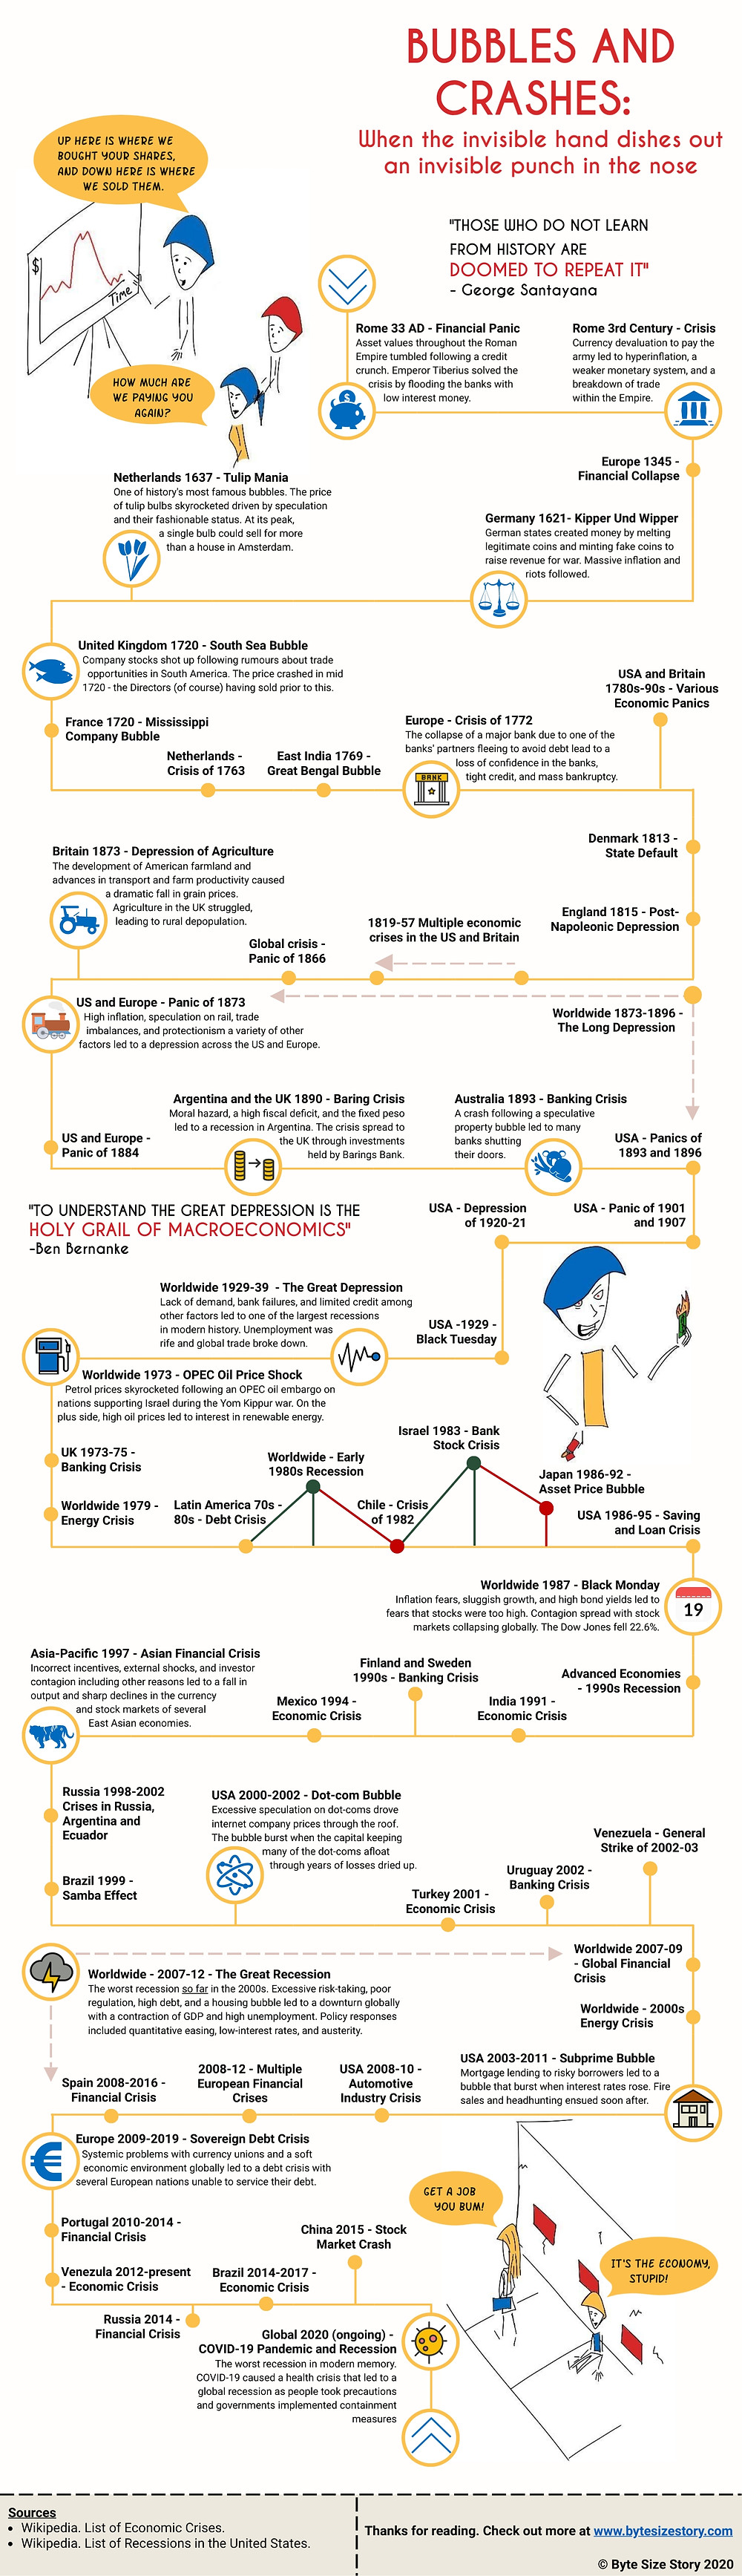 Infographic/timeline of economic disasters